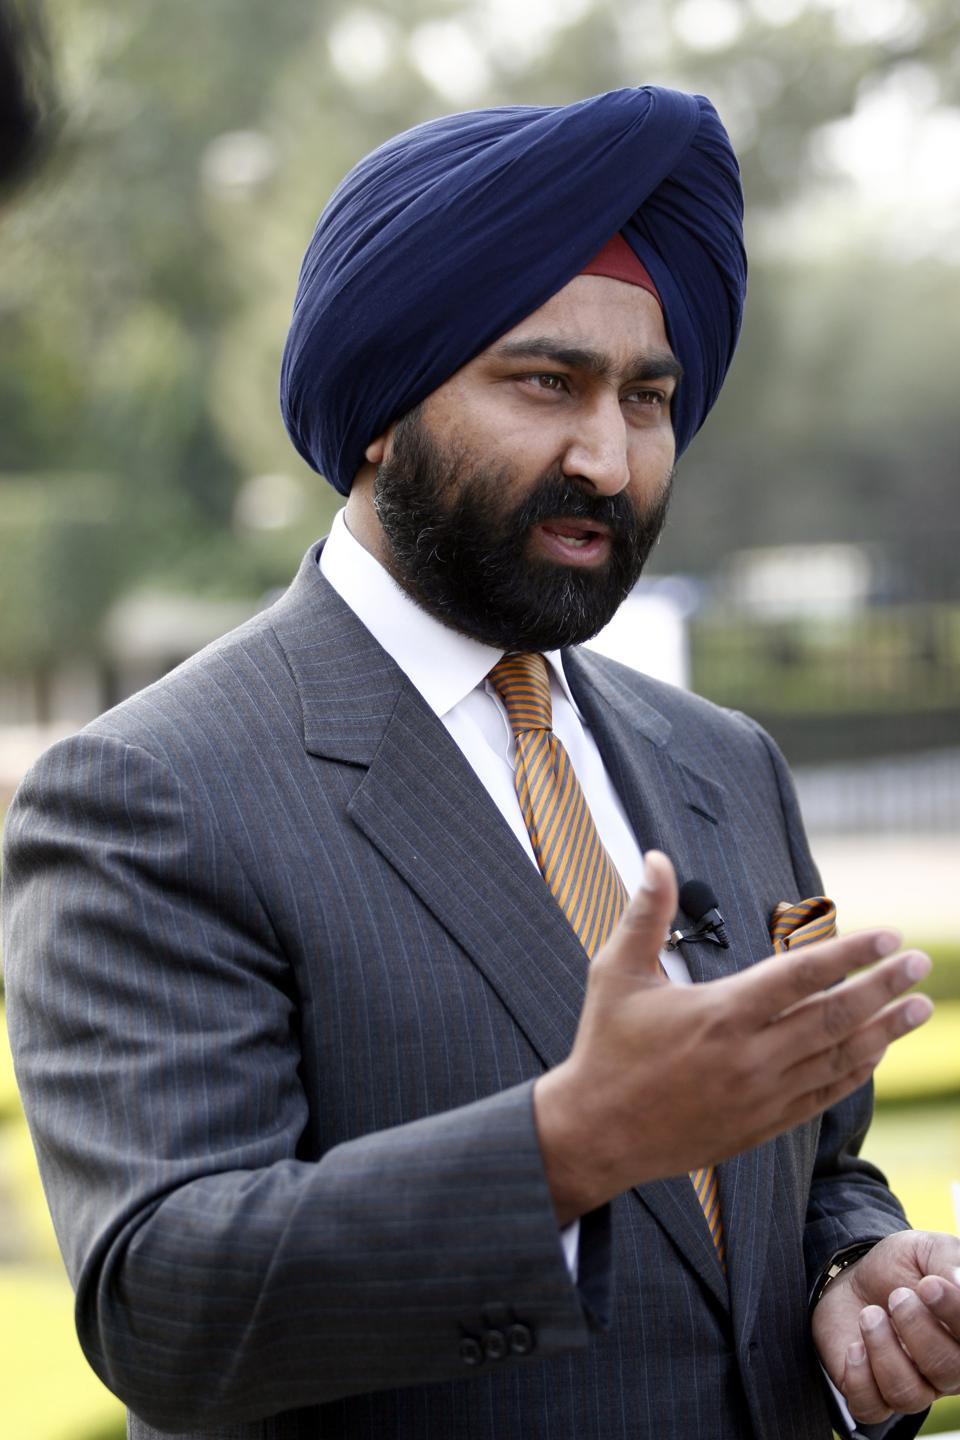 The Singh Brothers Are At It Again: Malvinder Accuses Shivinder Of Death Threats, Fraud